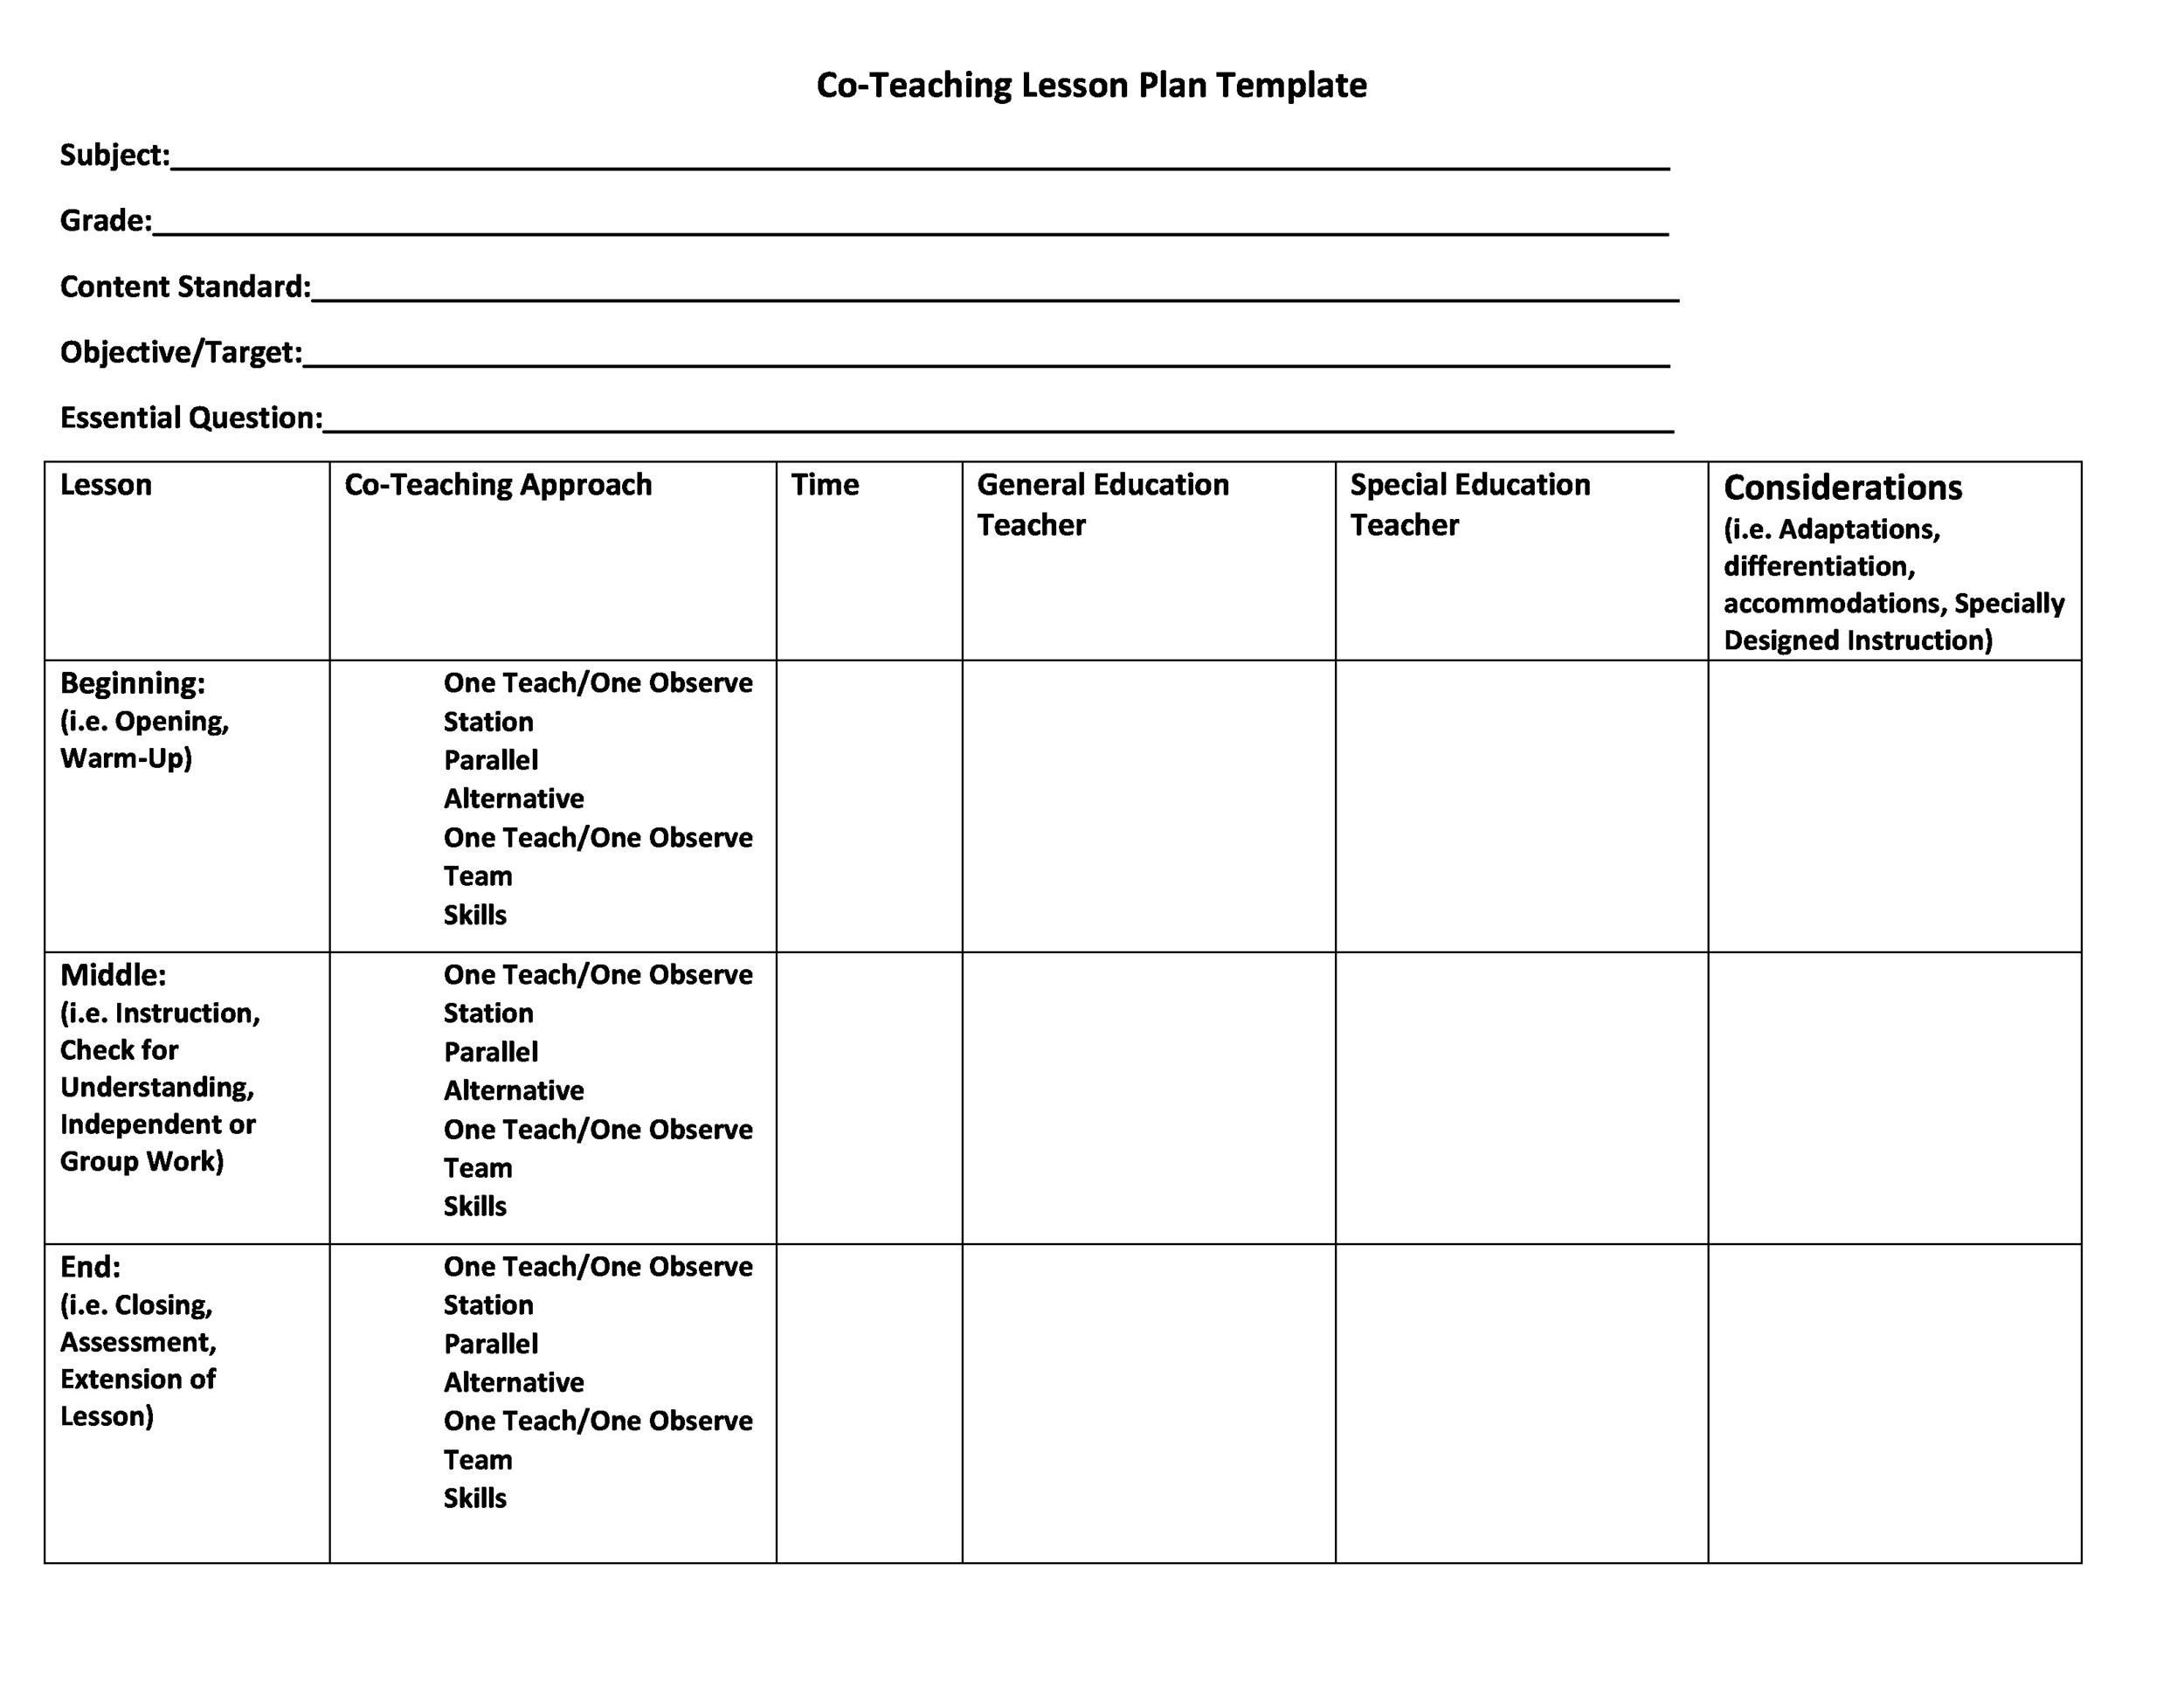 44 FREE Lesson Plan Templates Common Core, Preschool, Weekly - Preschool Lesson Plan Template